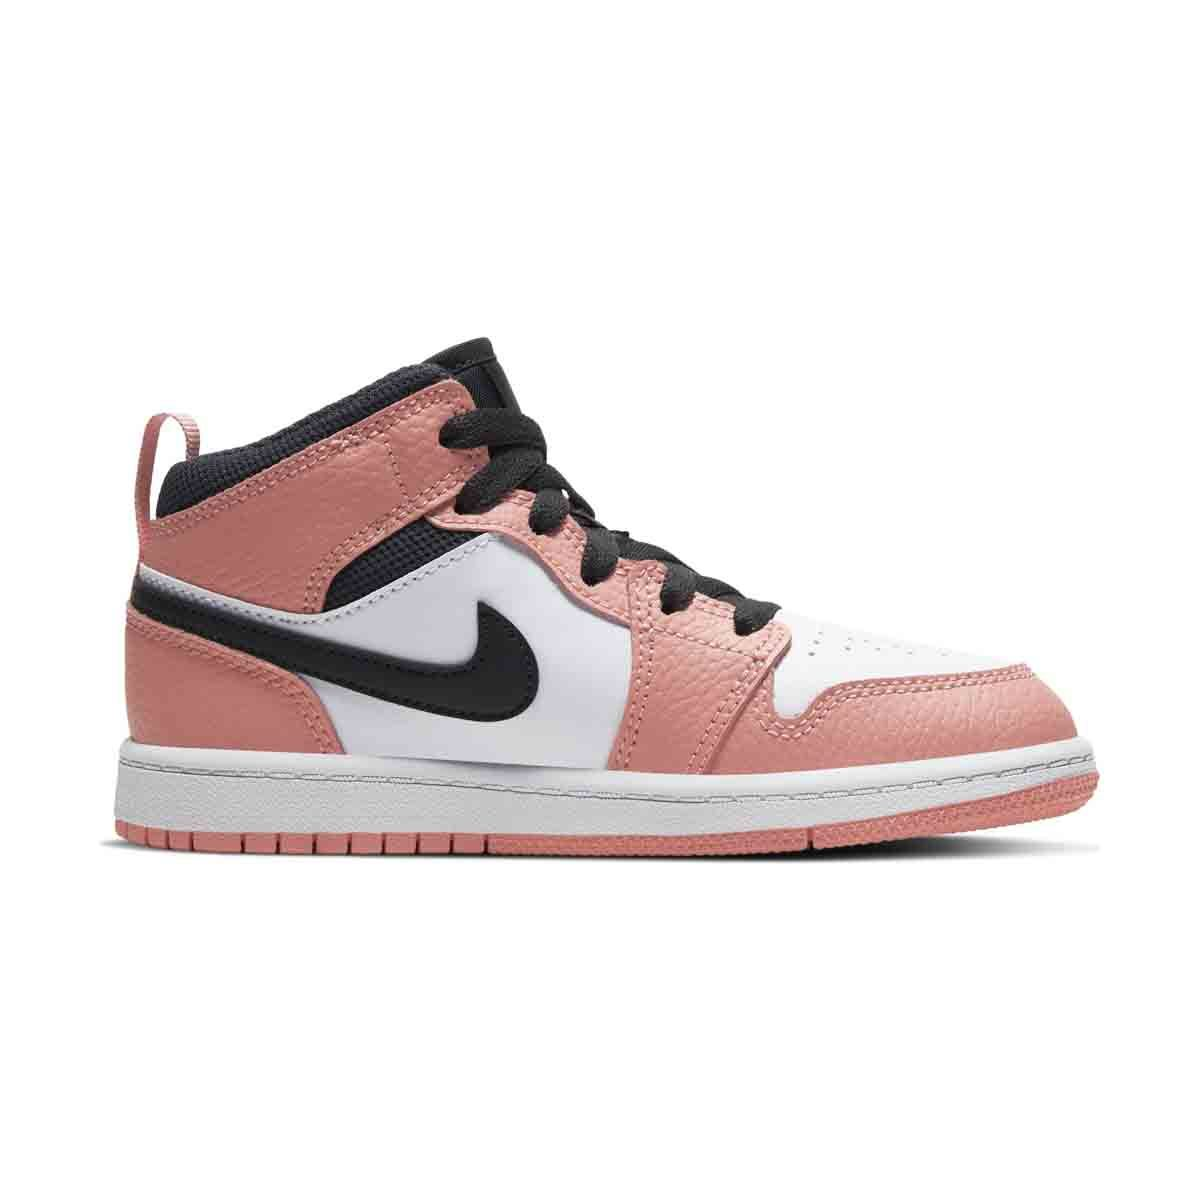 Little Kids Jordan 1 Mid